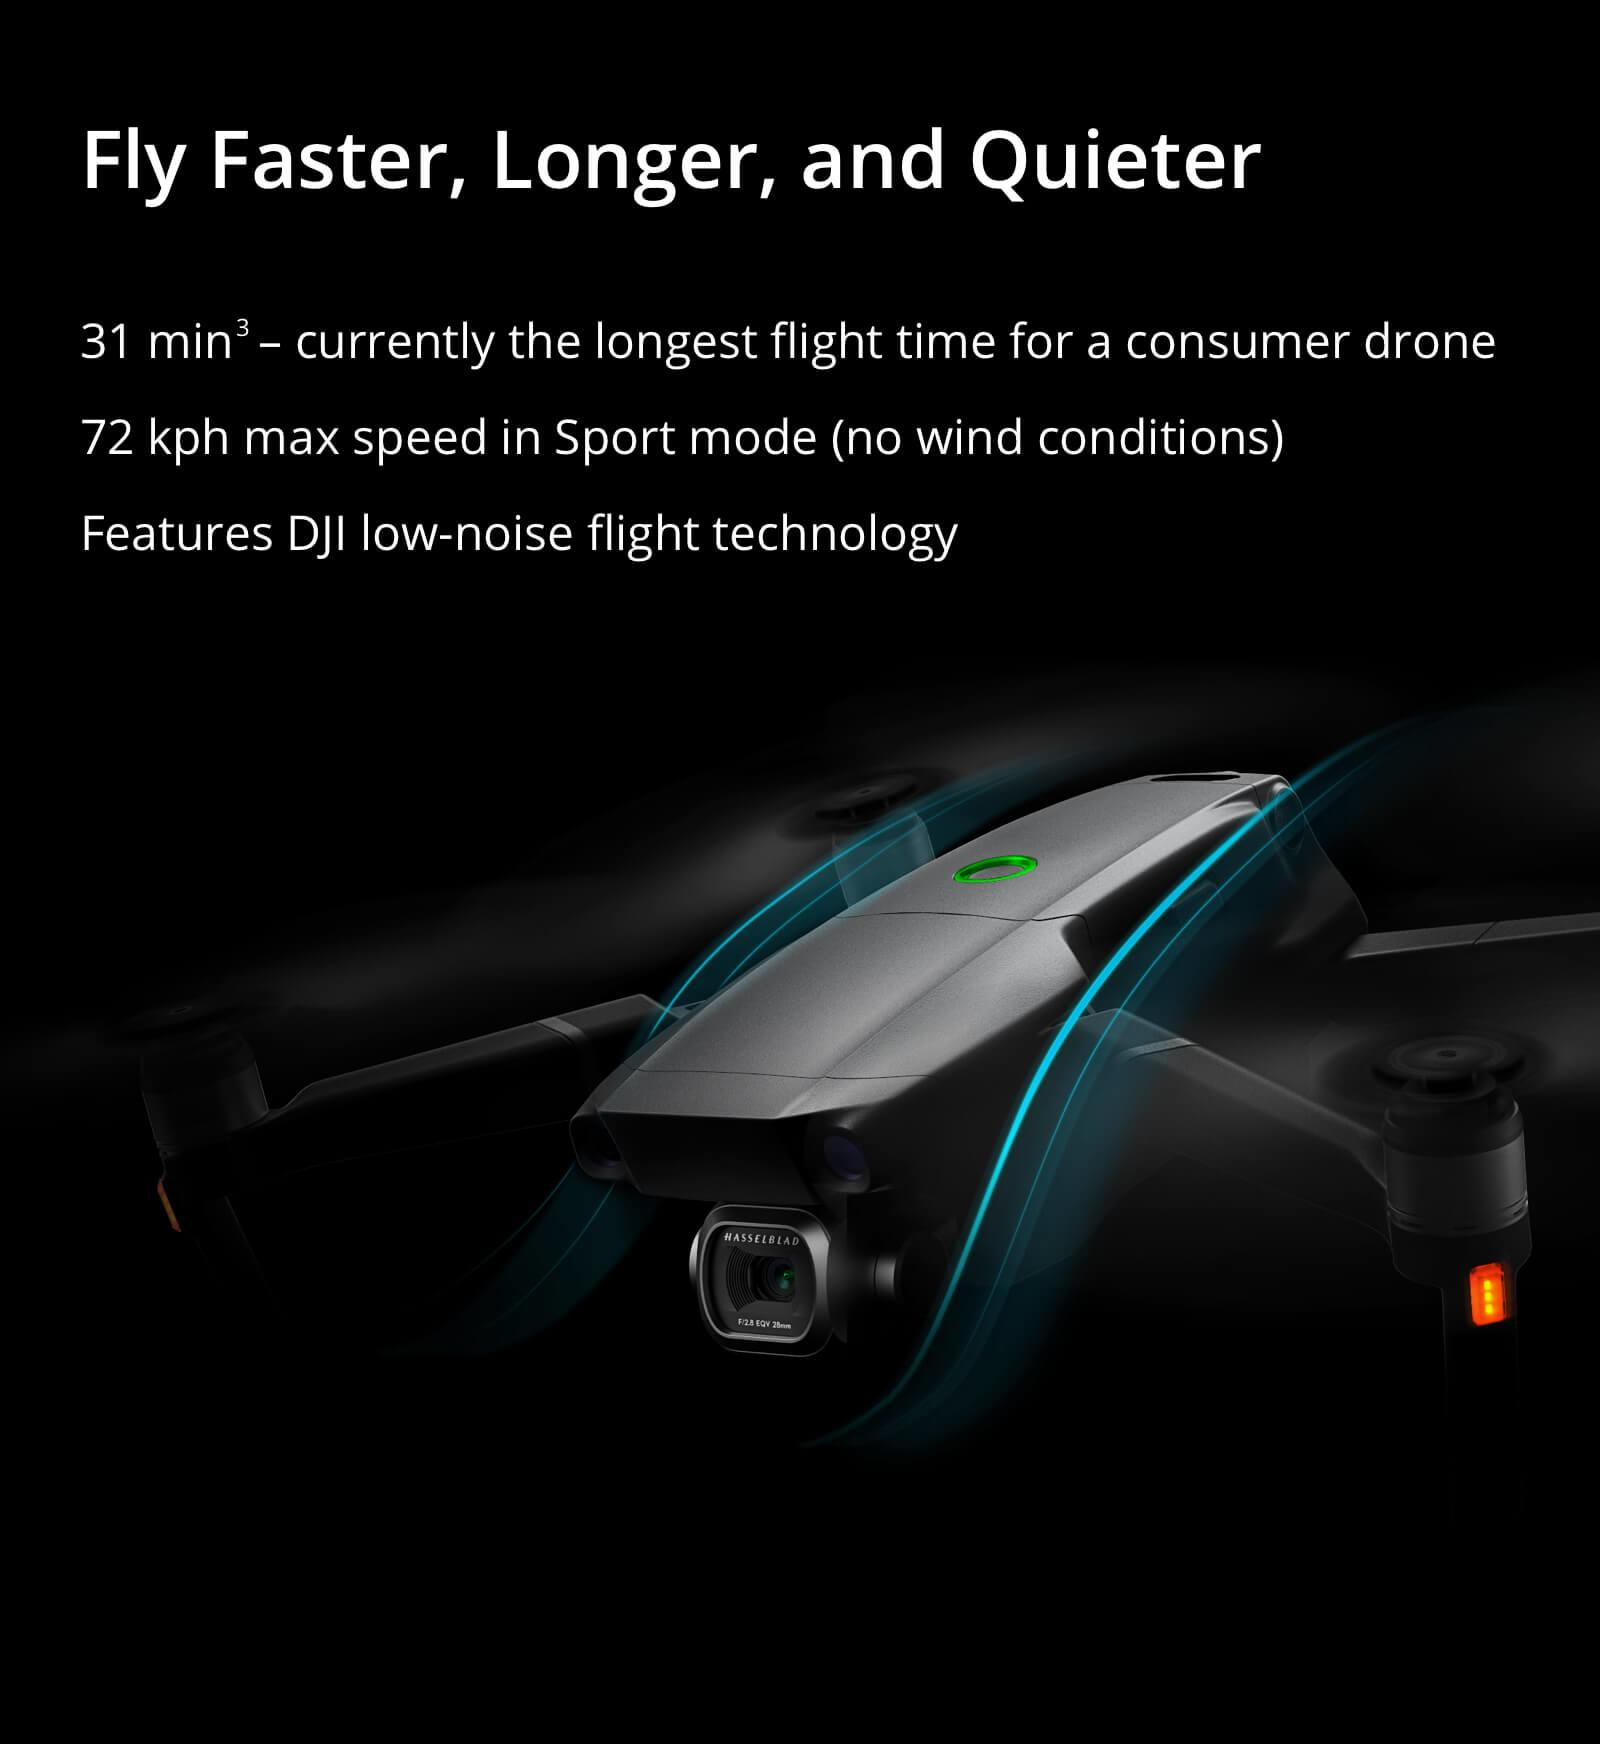 Fly faster longer and quieter with the Mavic 2